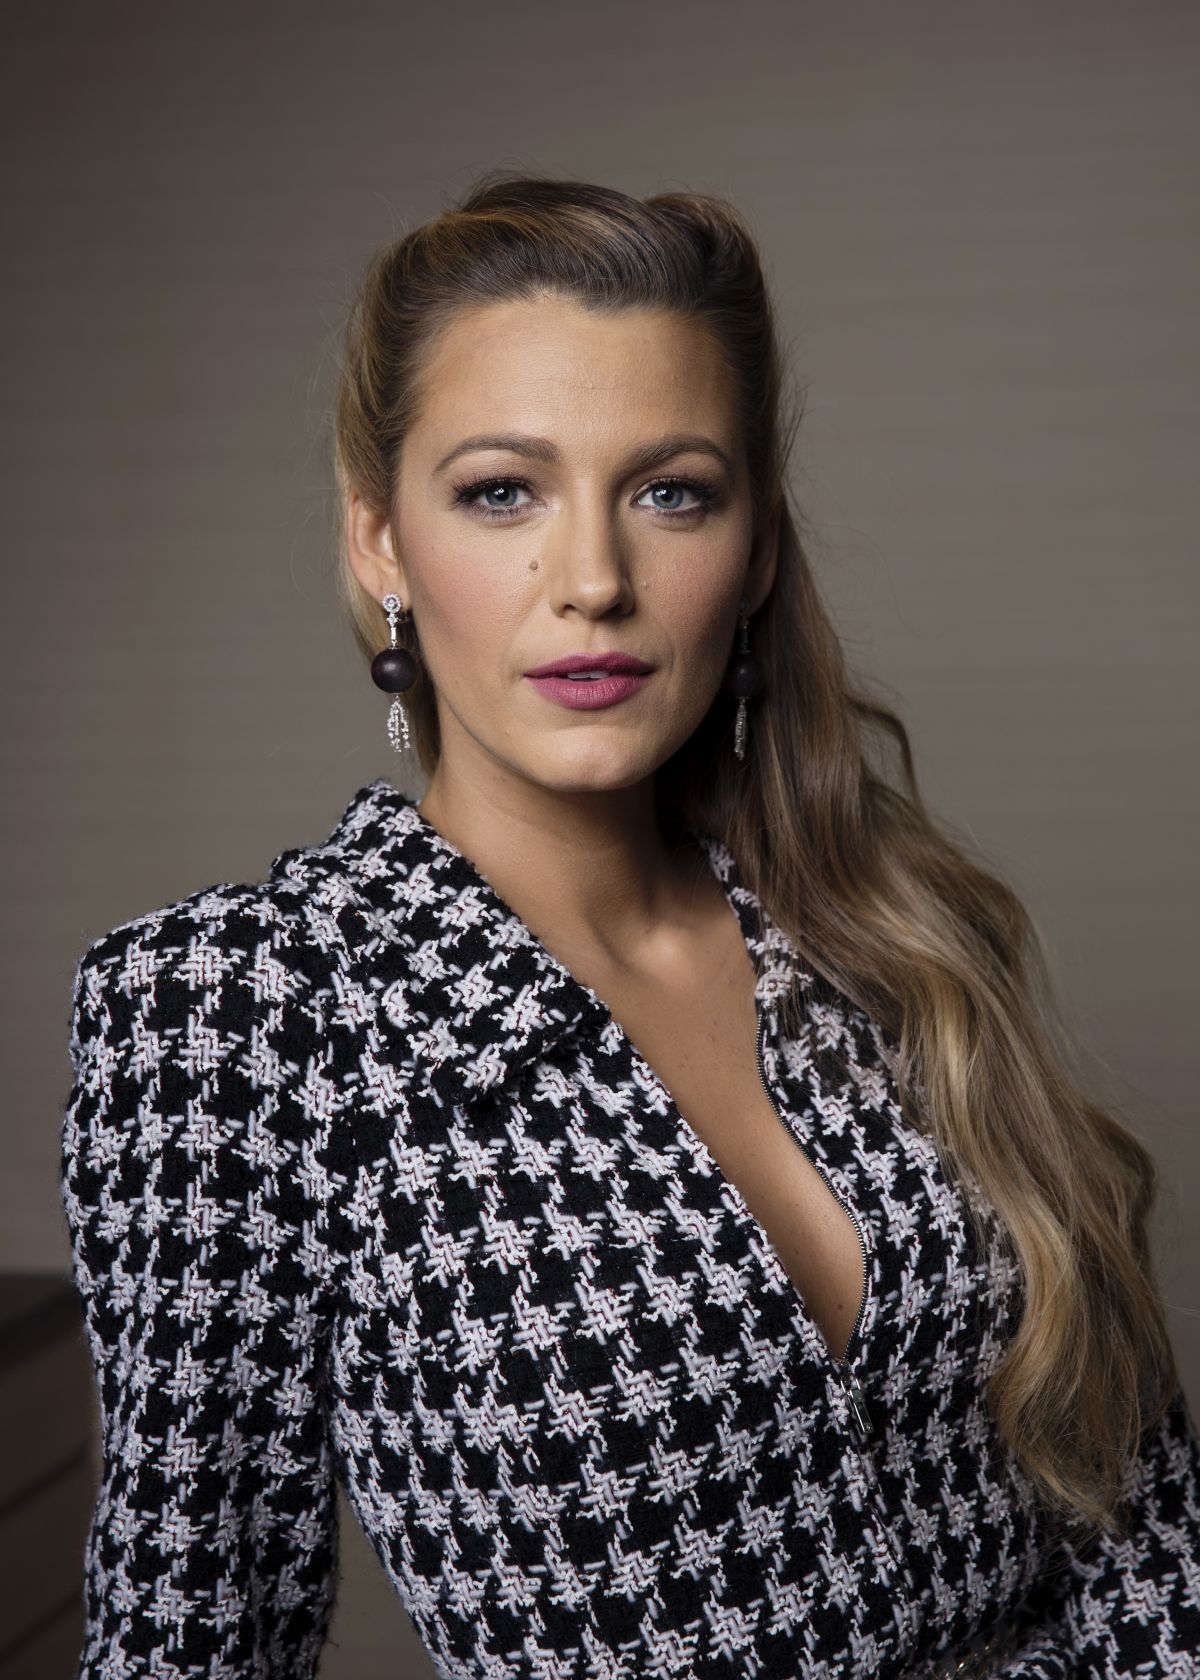 BLAKE LIVELY by Taylor Jewell Photoshoot, October 2017 ...